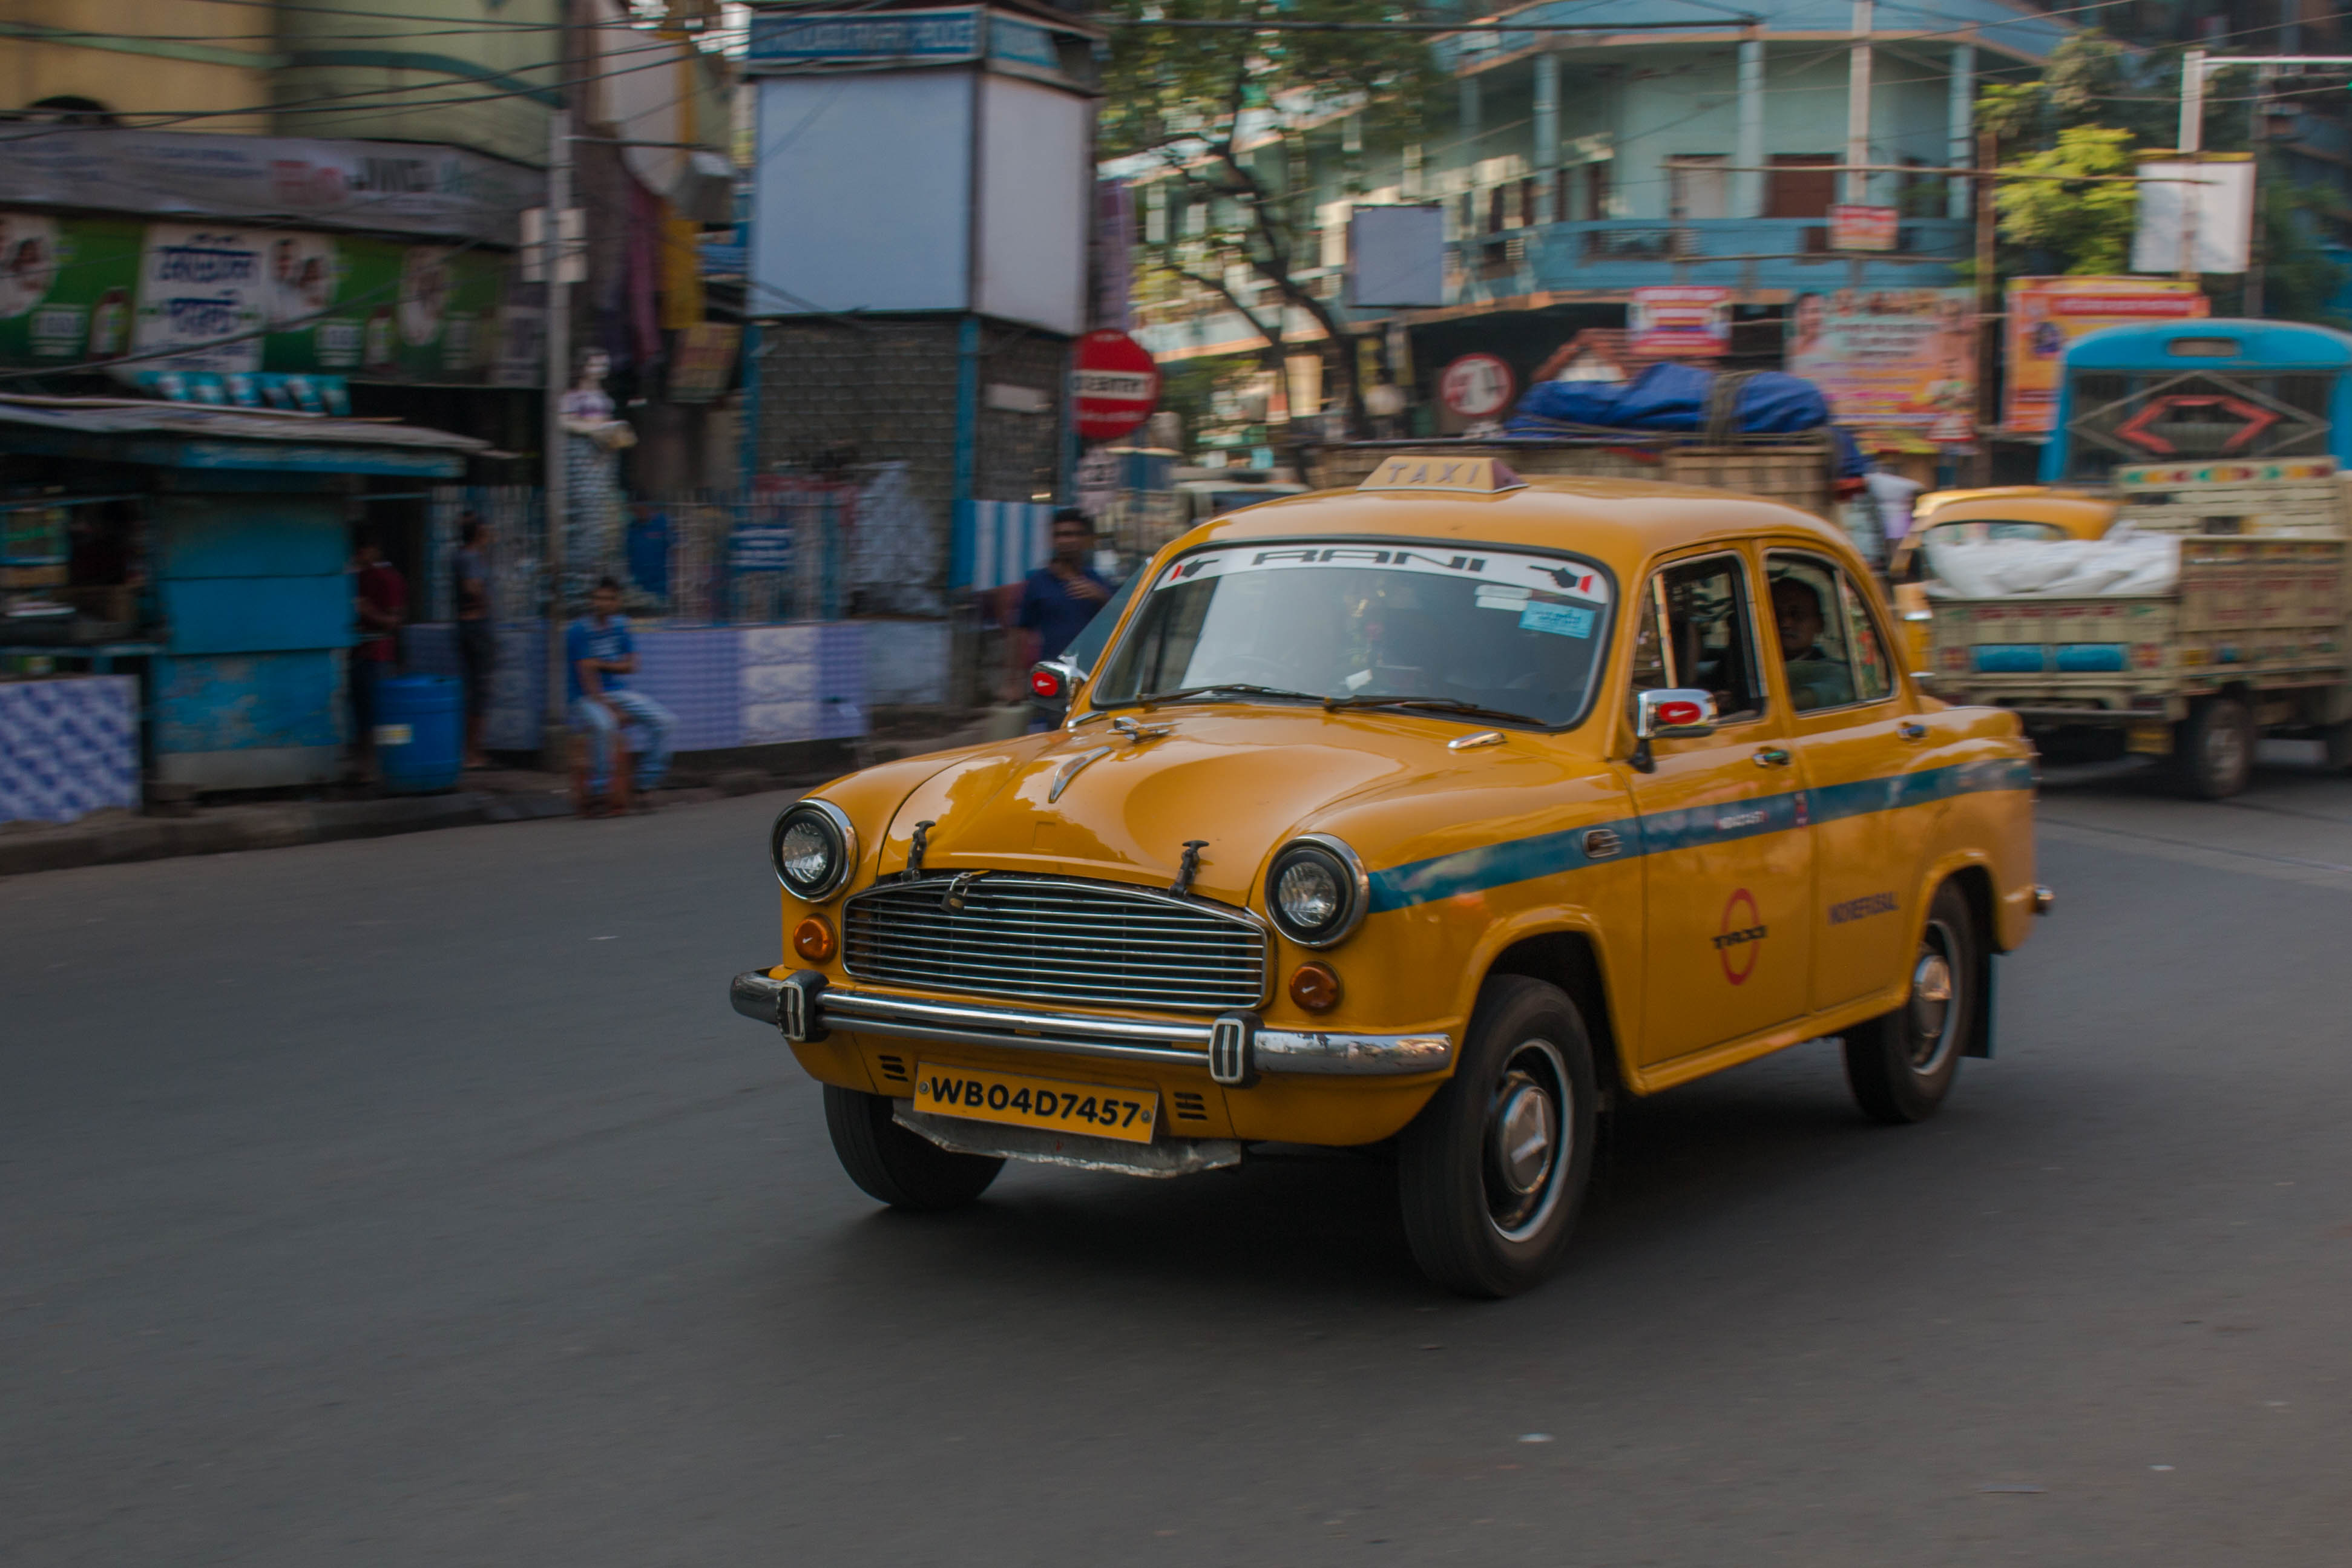 The famous yellow cabs in Kolkata